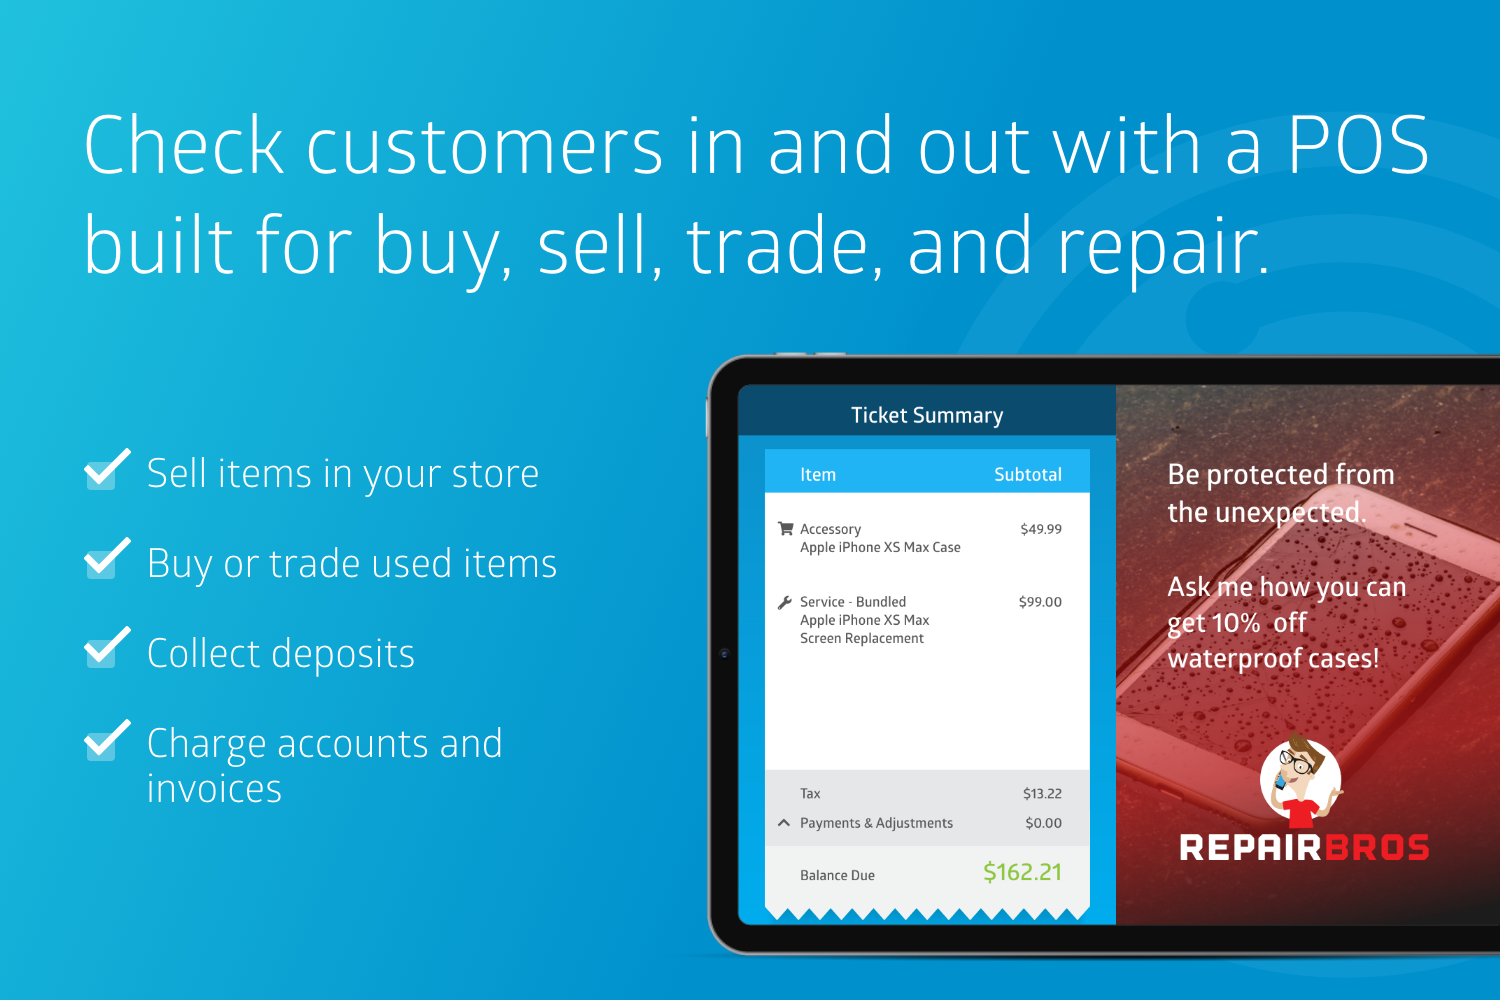 Check customers in and out with a POS built for buy, sell, trade, and repair.